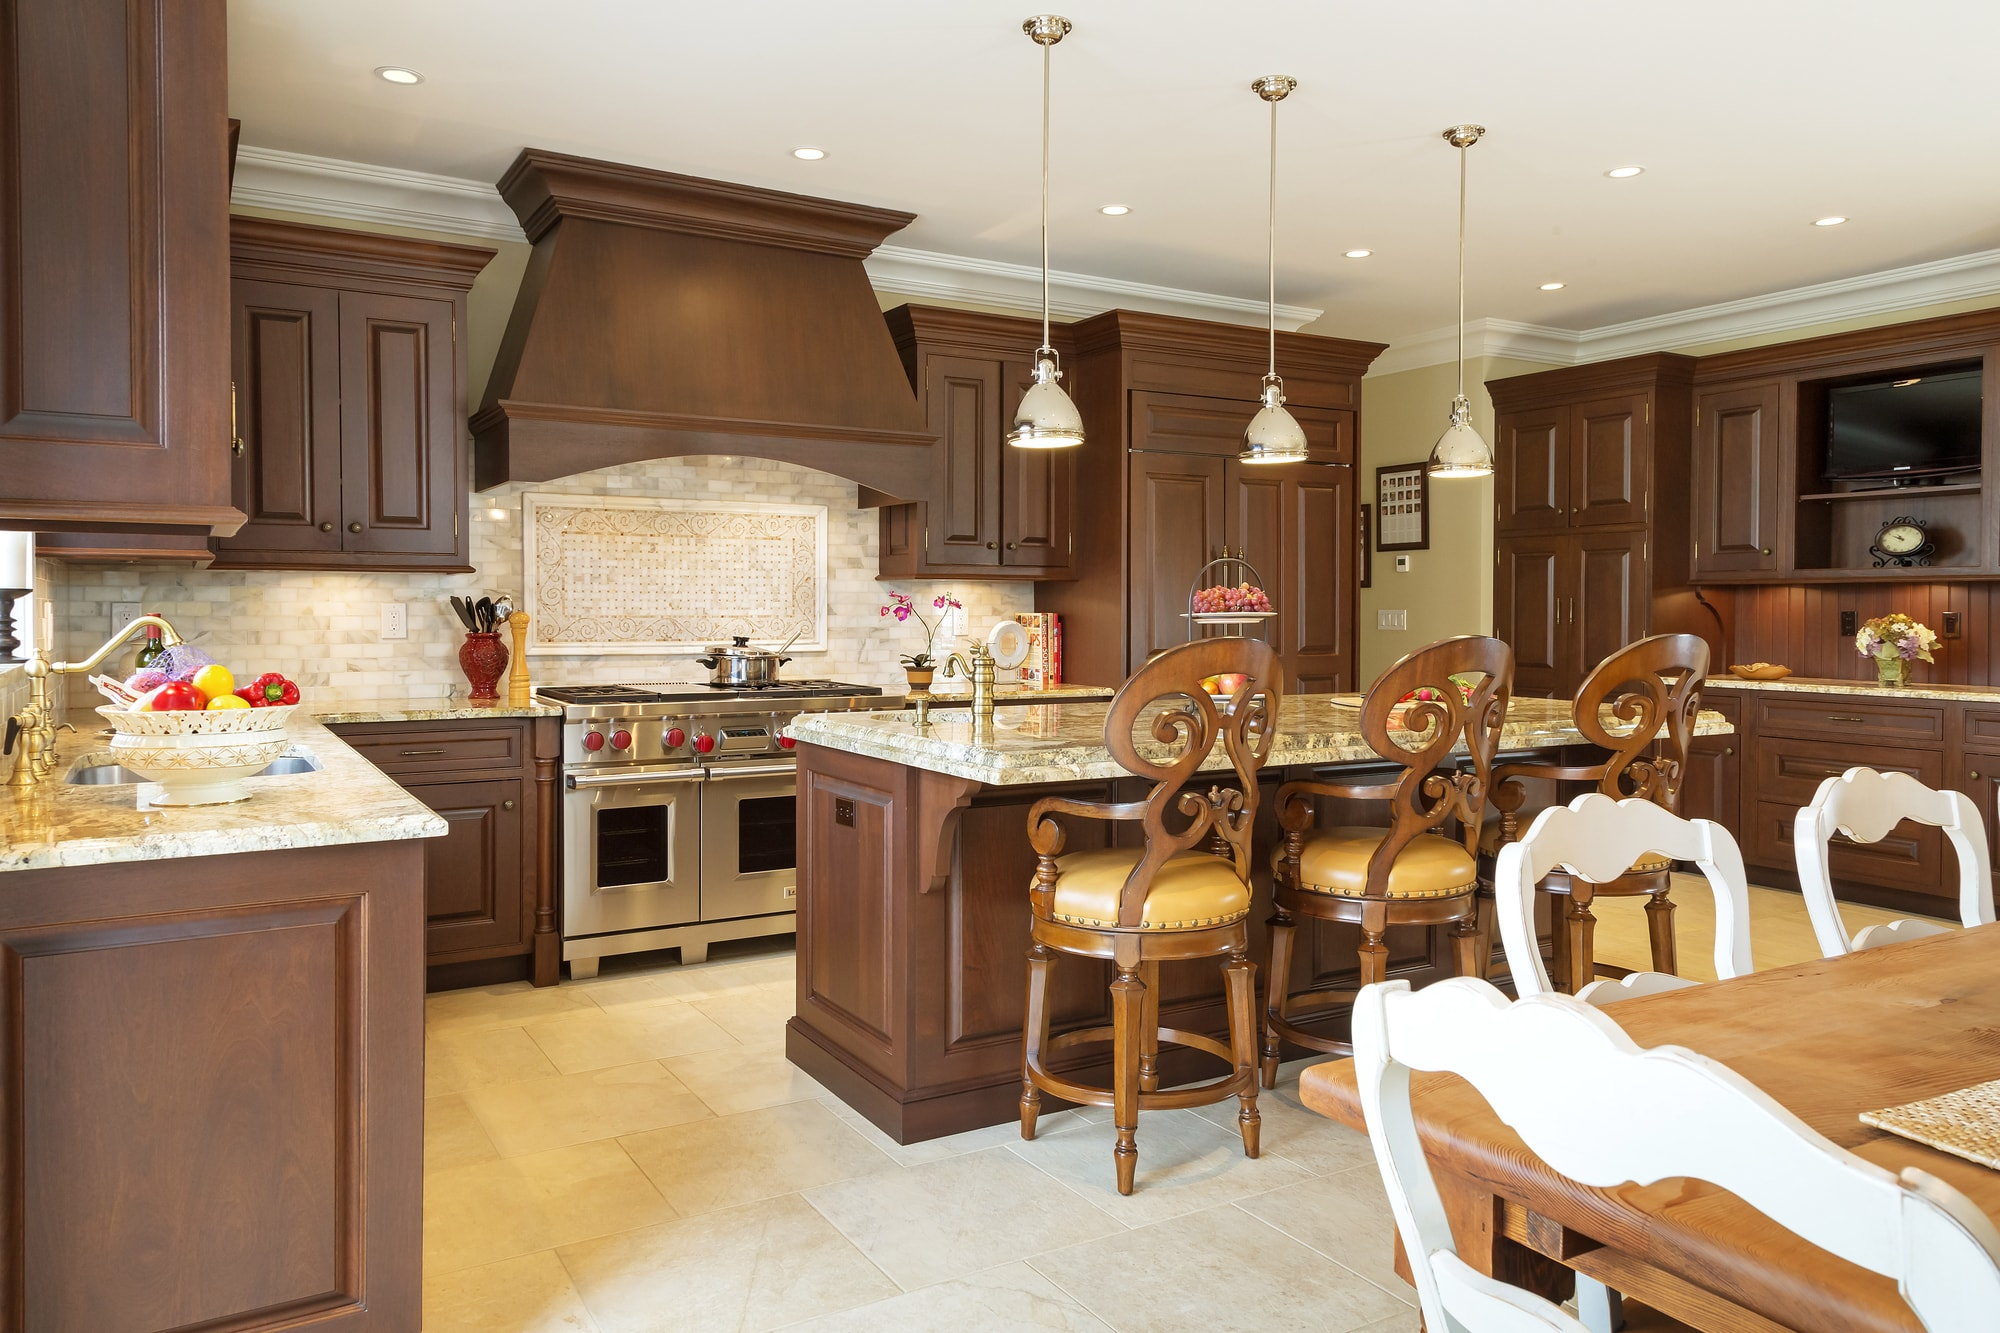 Traditional style kitchen with three pendant light fixtures